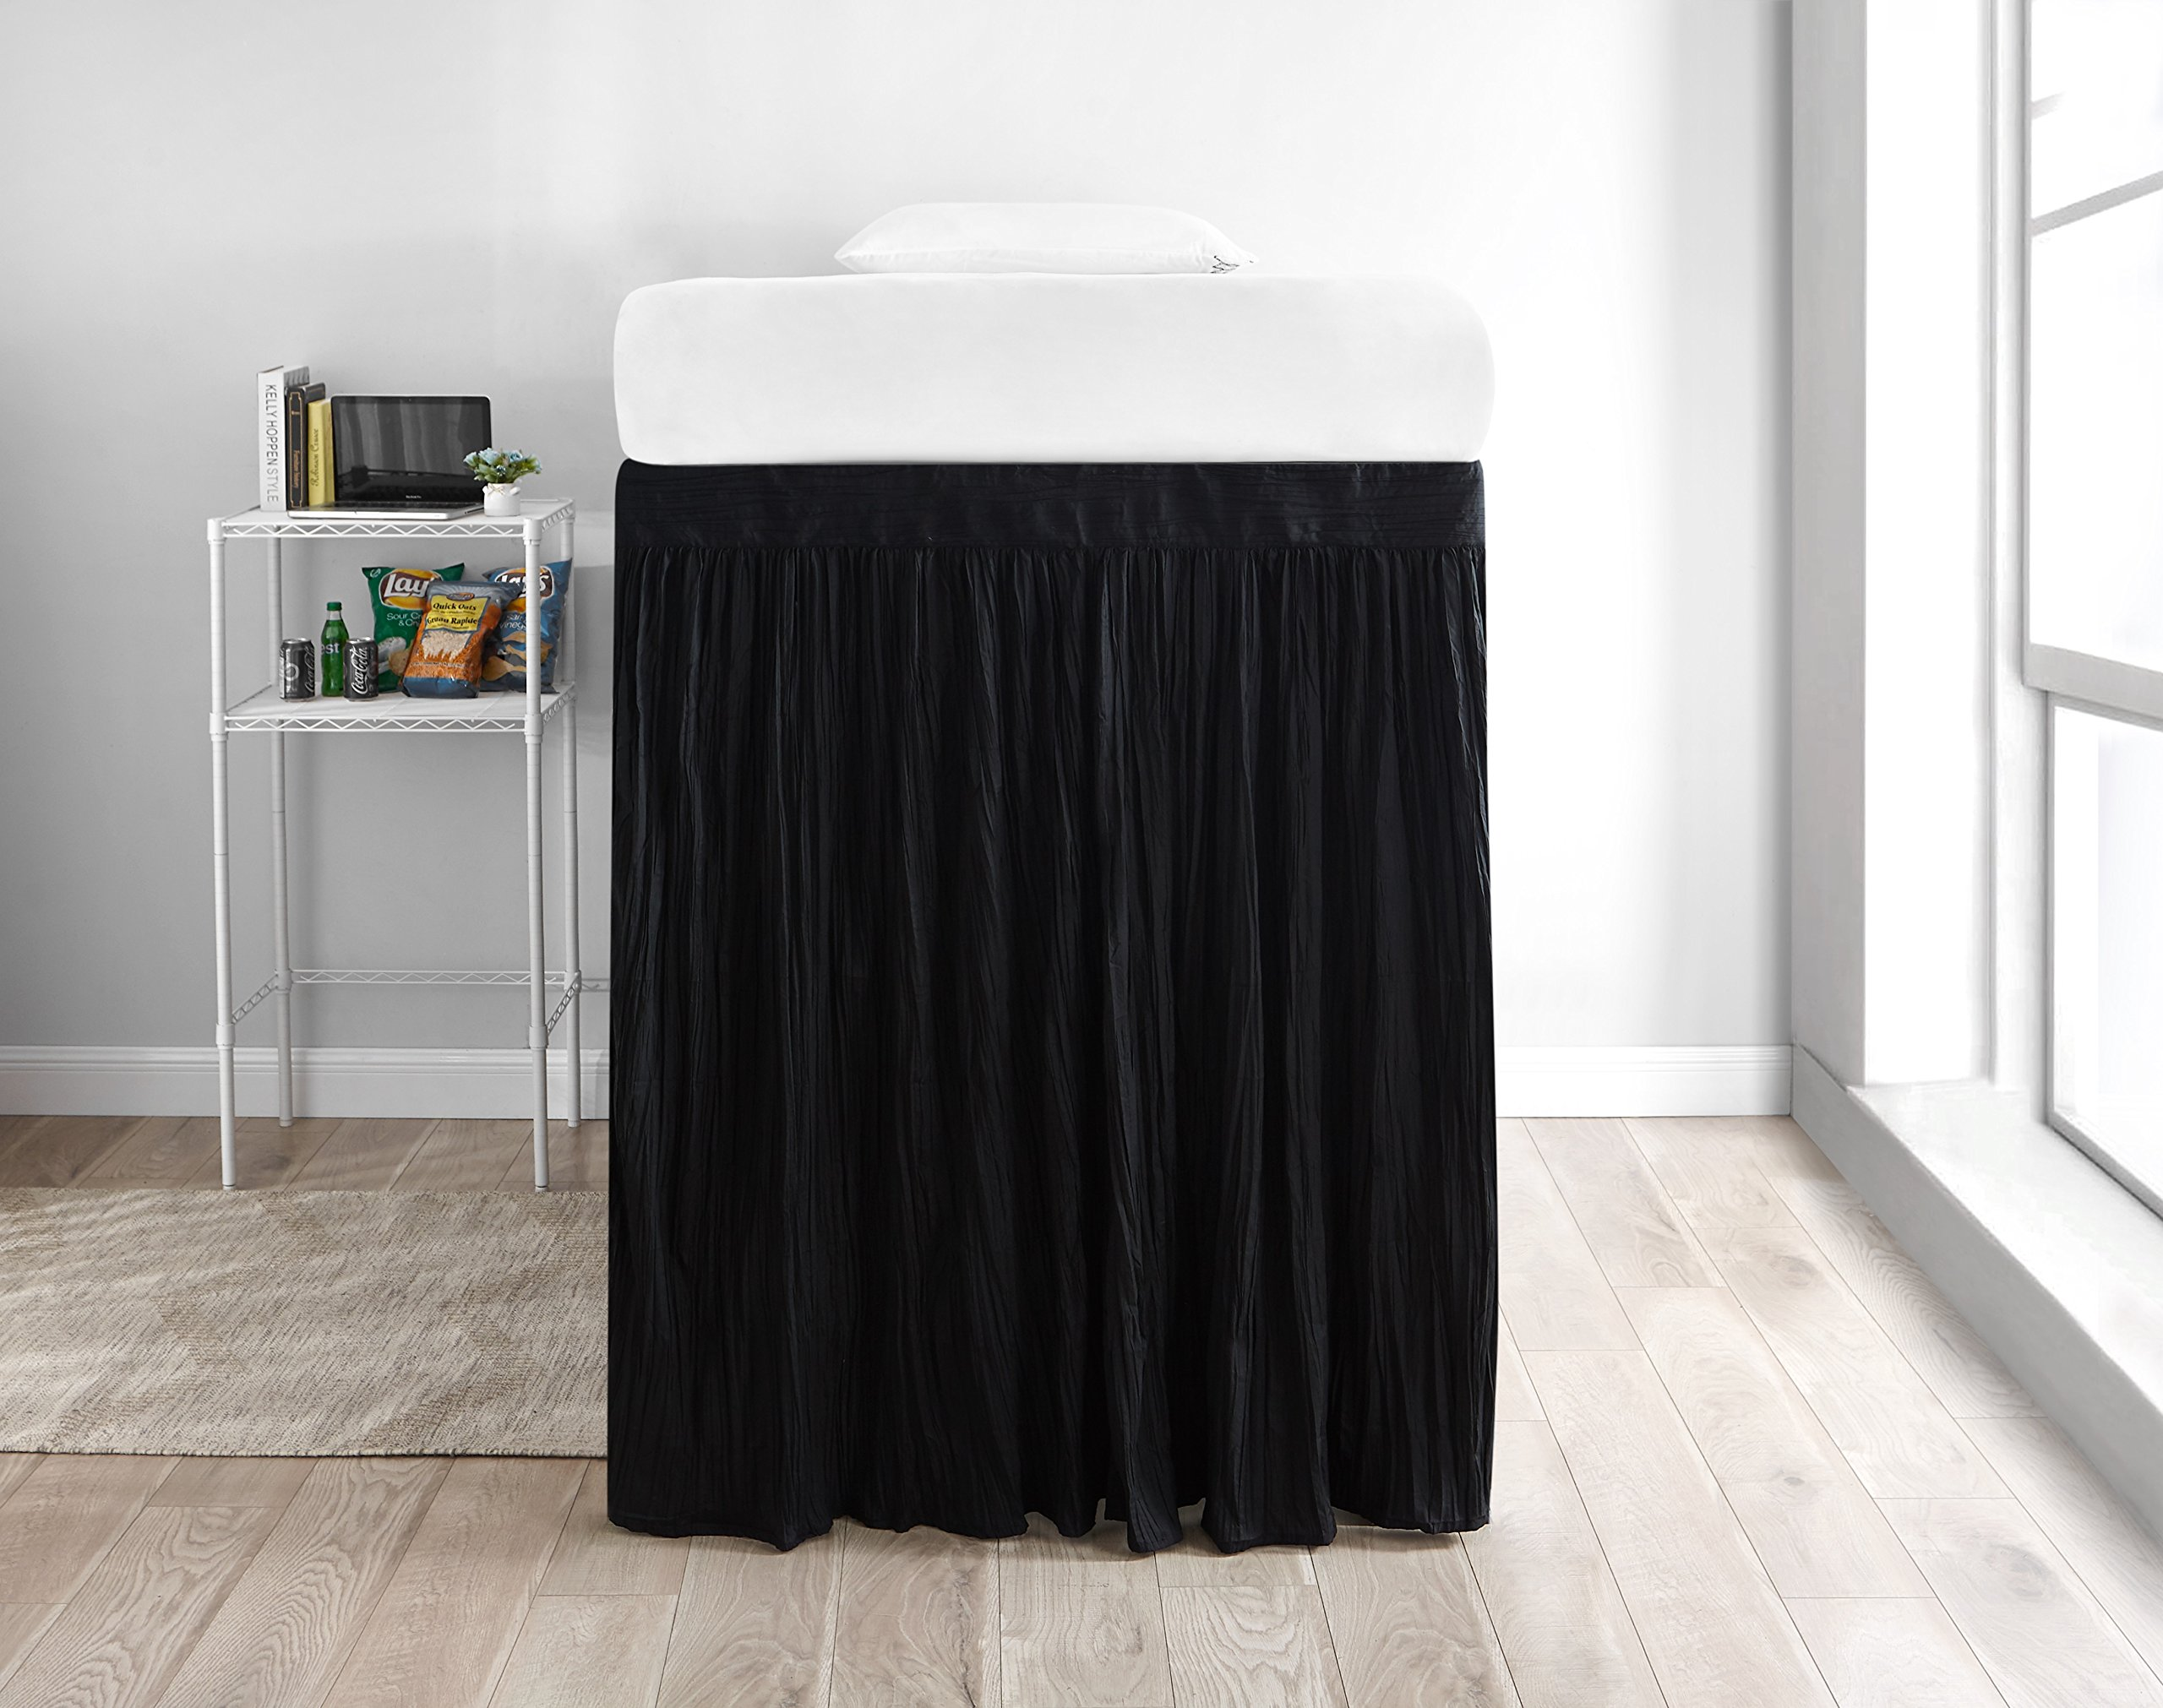 Crinkle Extended Dorm Sized Bed Skirt Panel with Ties (1 Panel) - Black (For raised or lofted beds)